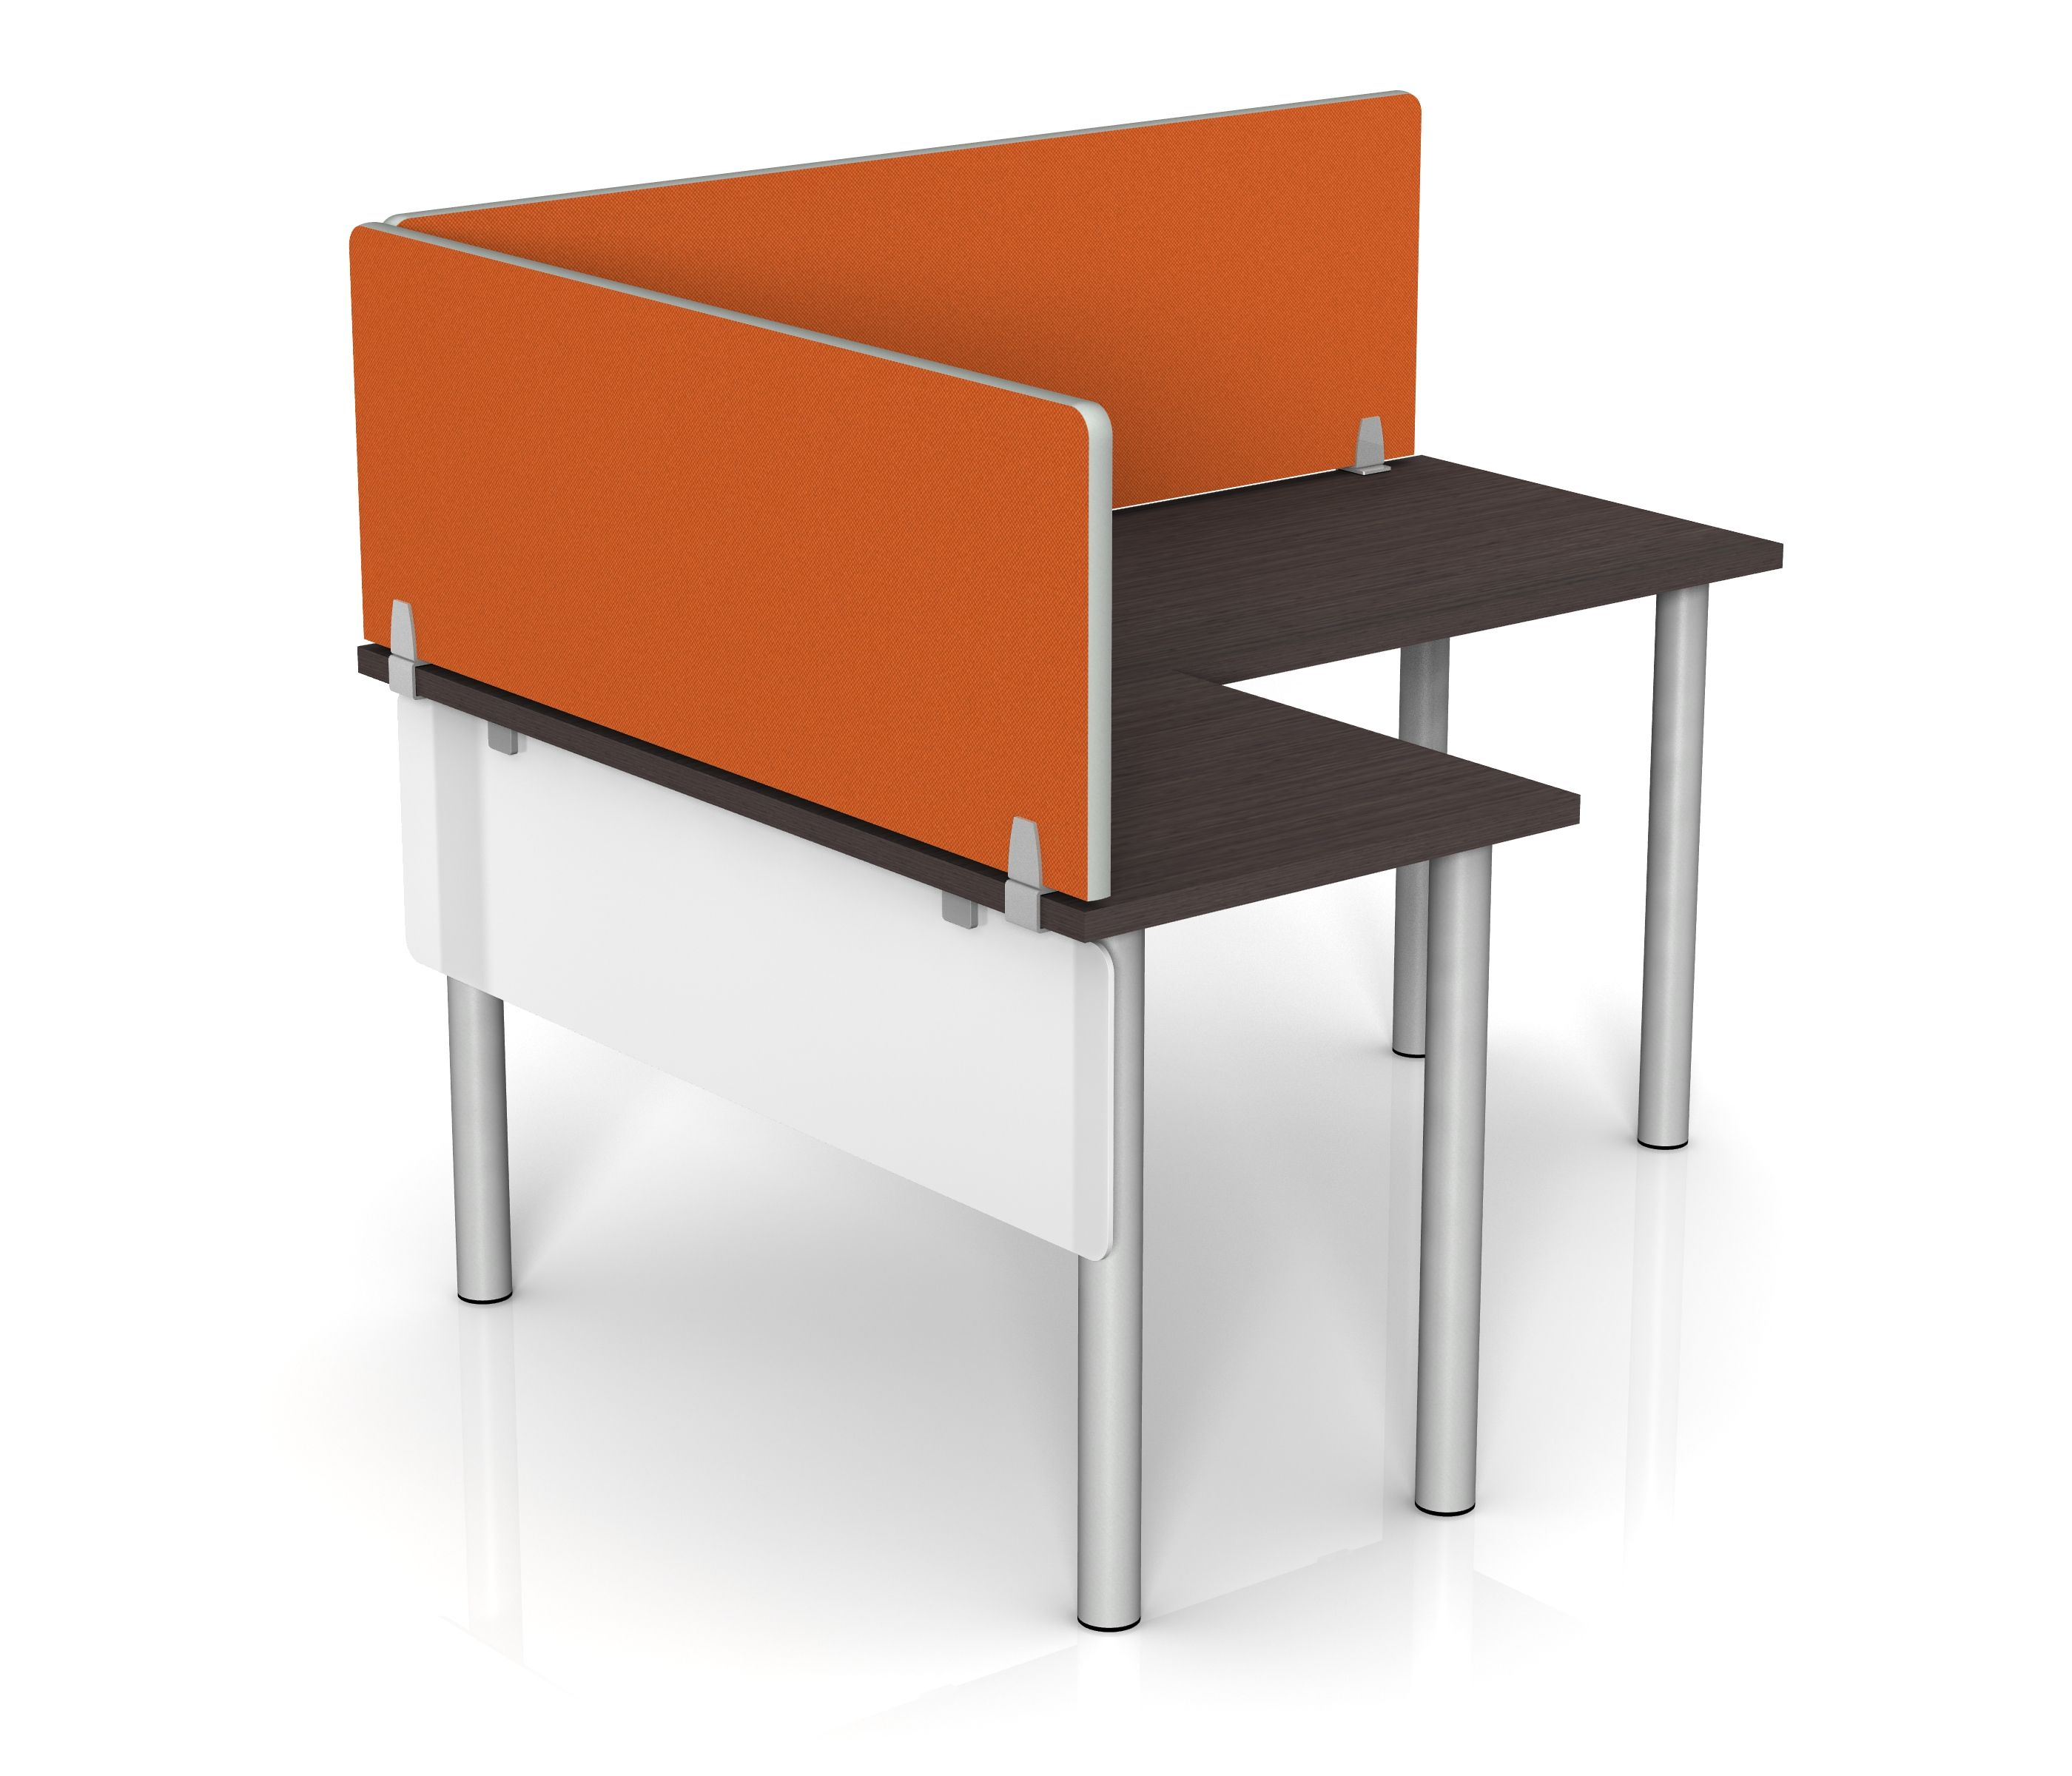 fabric desk dividers by merge works  desk dividers  pinterest  - fabric desk dividers by merge works